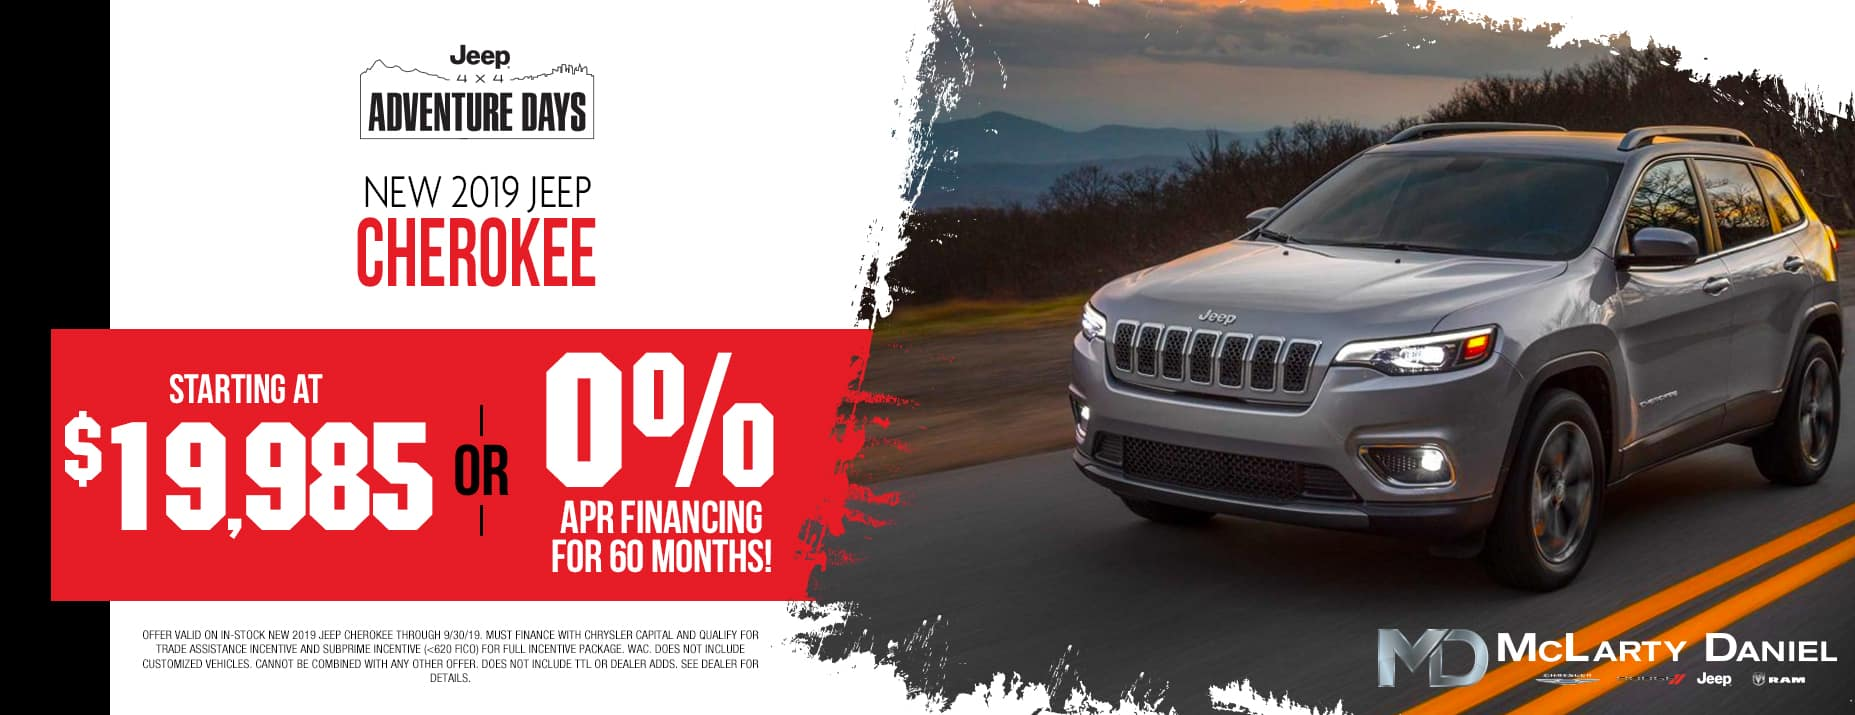 2019 Jeep Cherokee $19985 or 0% APR